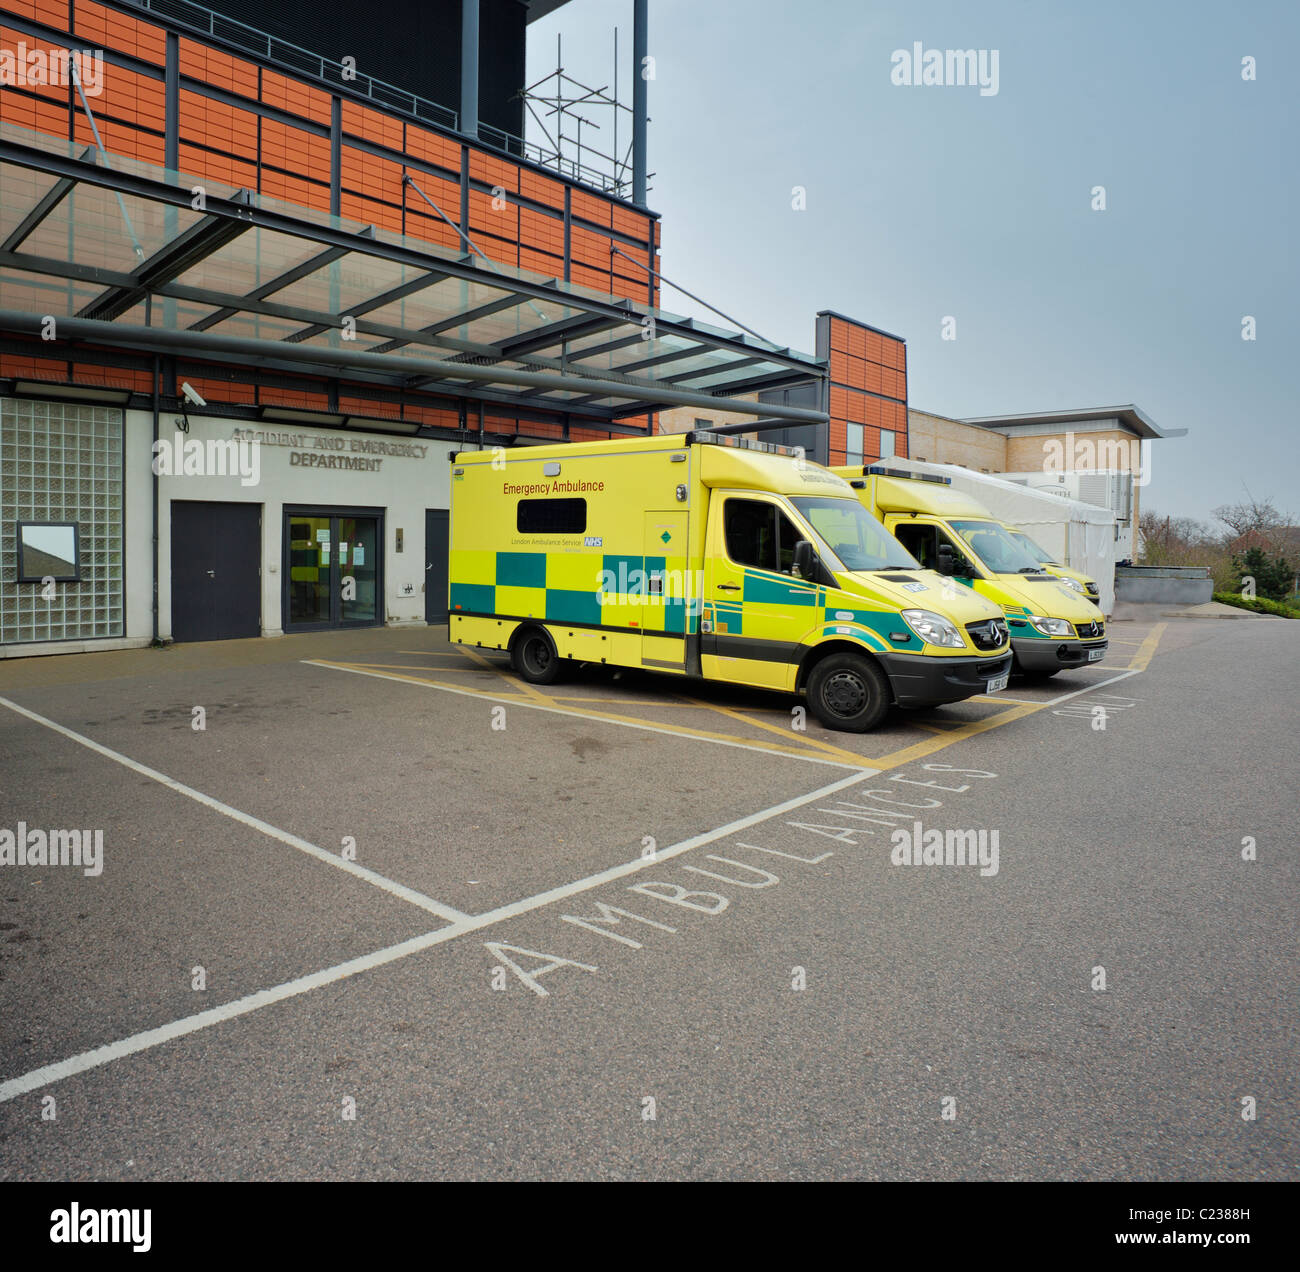 The Accident & Emergency Department, at the Princess Royal University Hospital Farnborough. - Stock Image